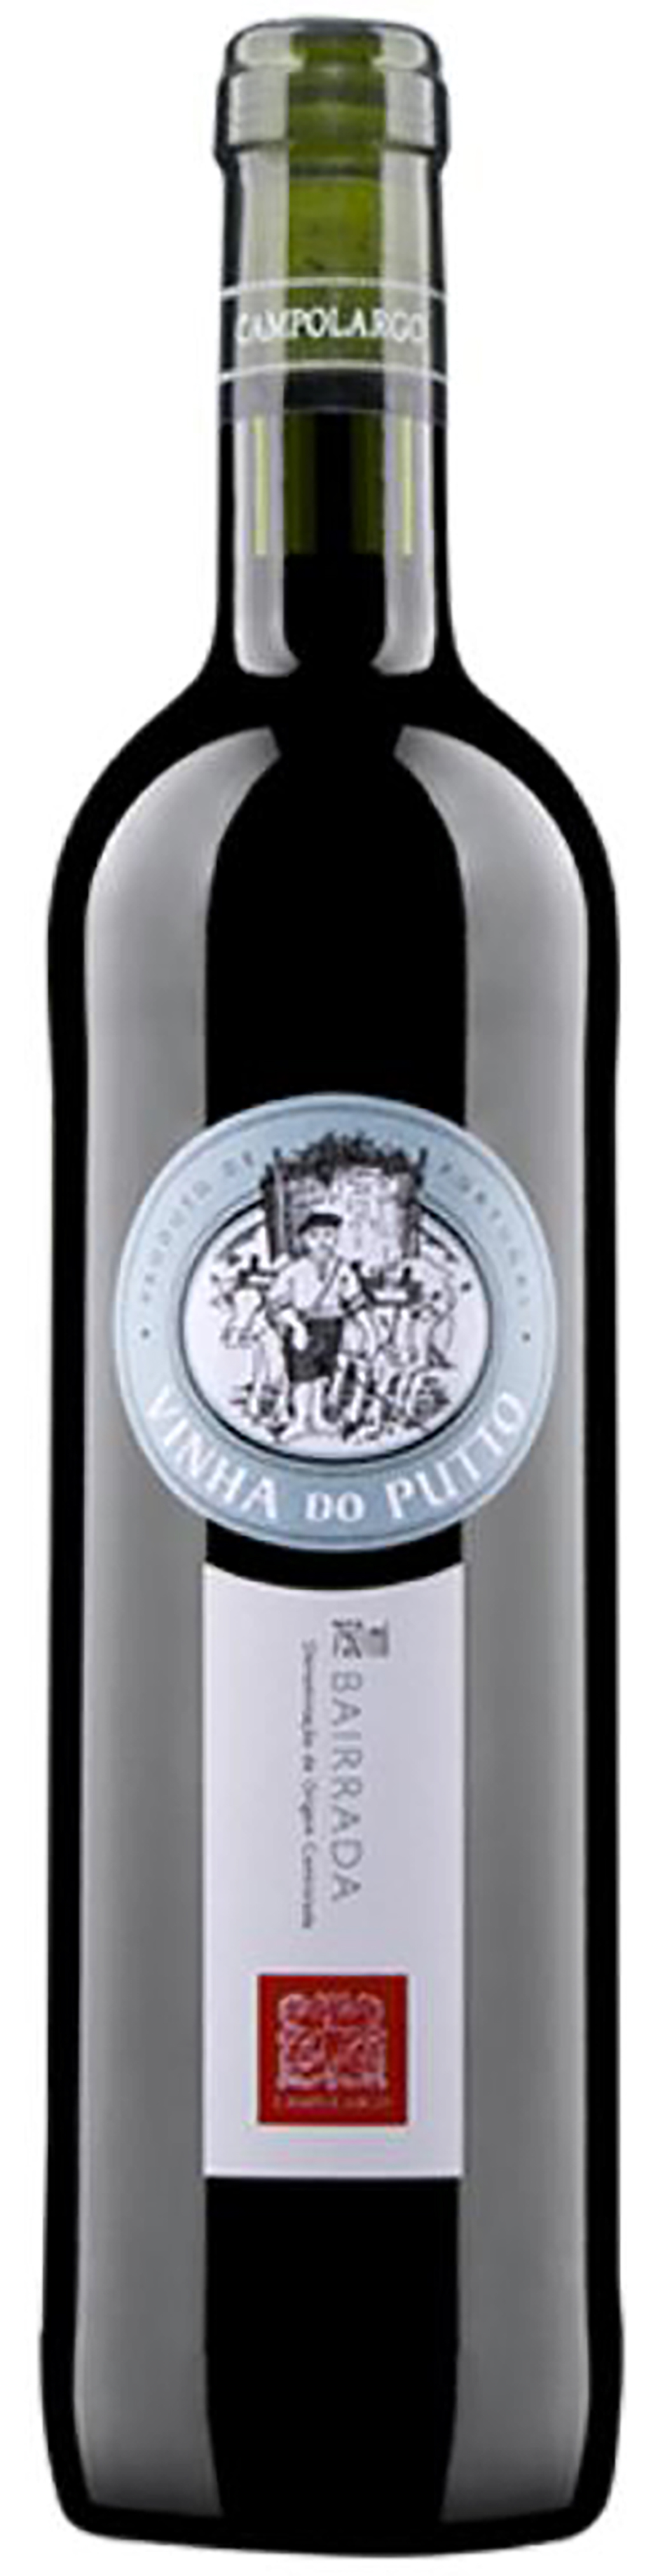 Vinha do Putto Tinto 2013